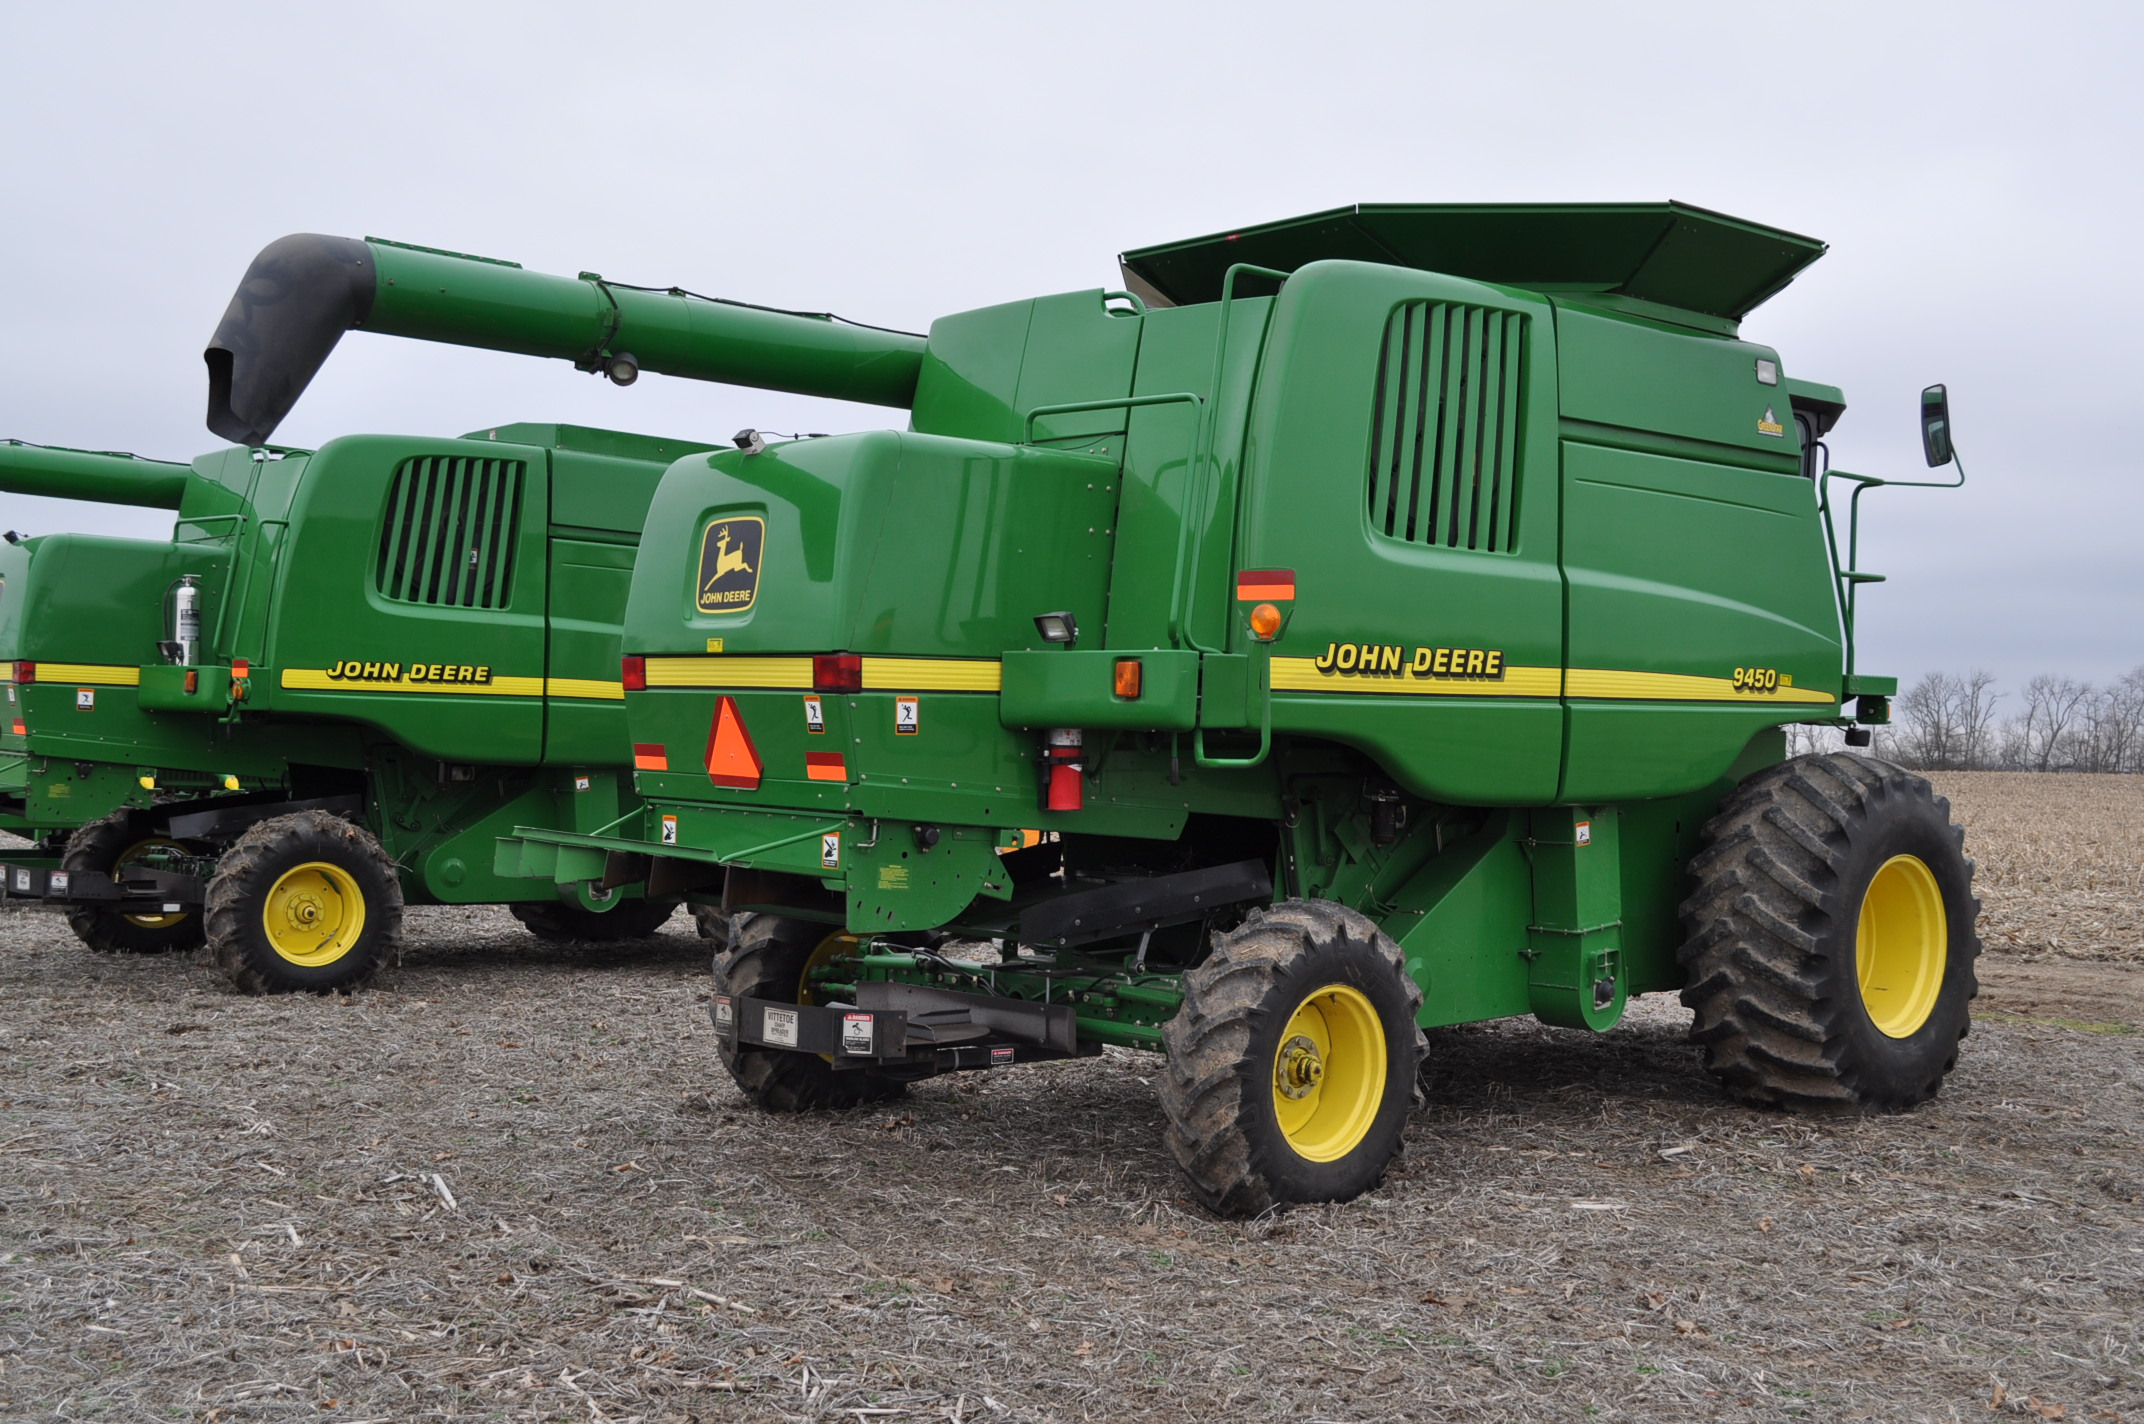 John Deere 9450 combine, 30.5-L32 drive, NEW 14.9-24 rear, chopper, chaff spreader, Mauer bin - Image 3 of 24